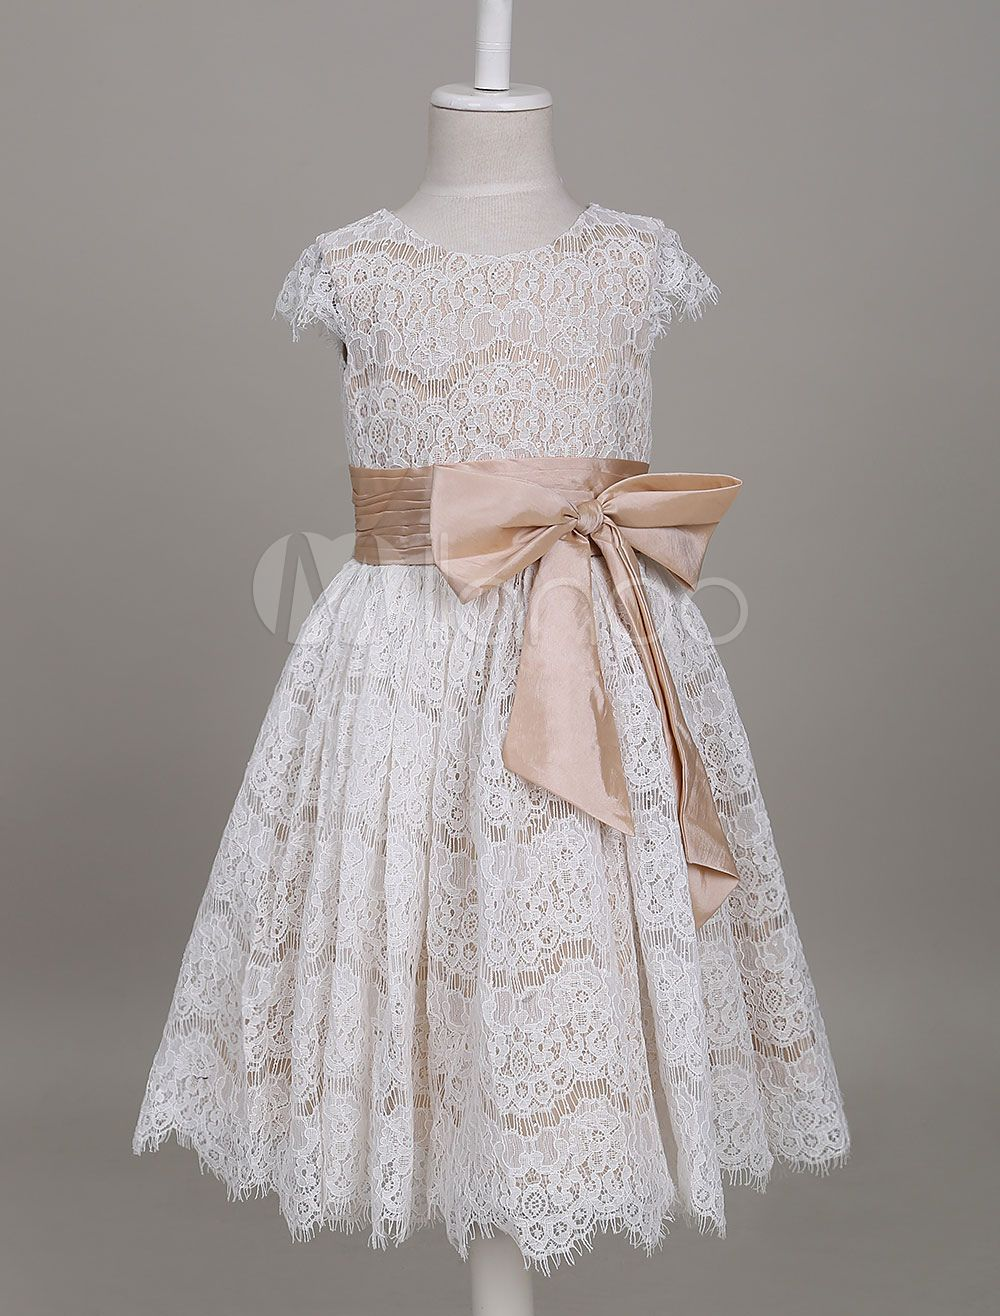 5ed996bb2db Flower Girl Dresses Lace Champagne Short Sleeve Bow Sash A Line Formal  Party Dress For Girls